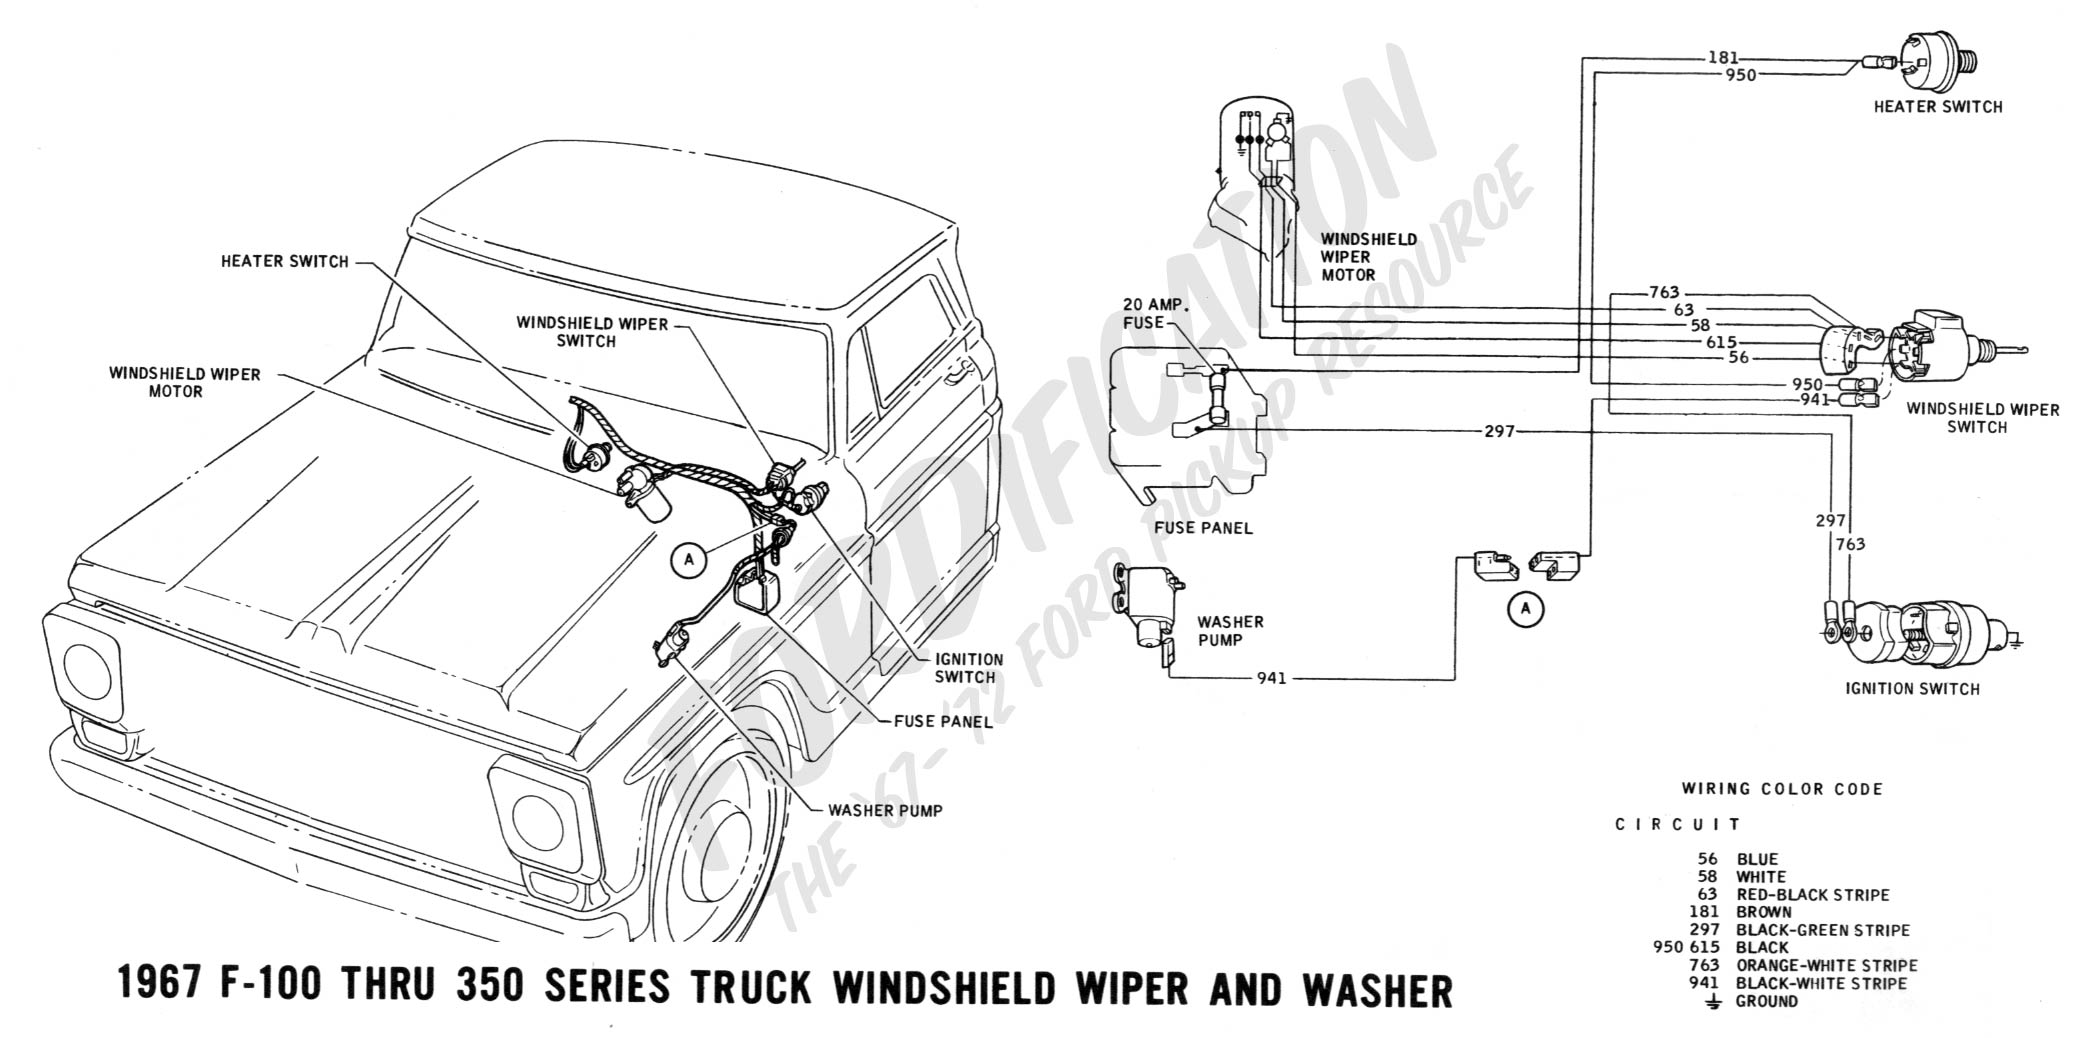 1965 ford wiring schematic ford truck technical drawings and schematics section h wiring  ford truck technical drawings and